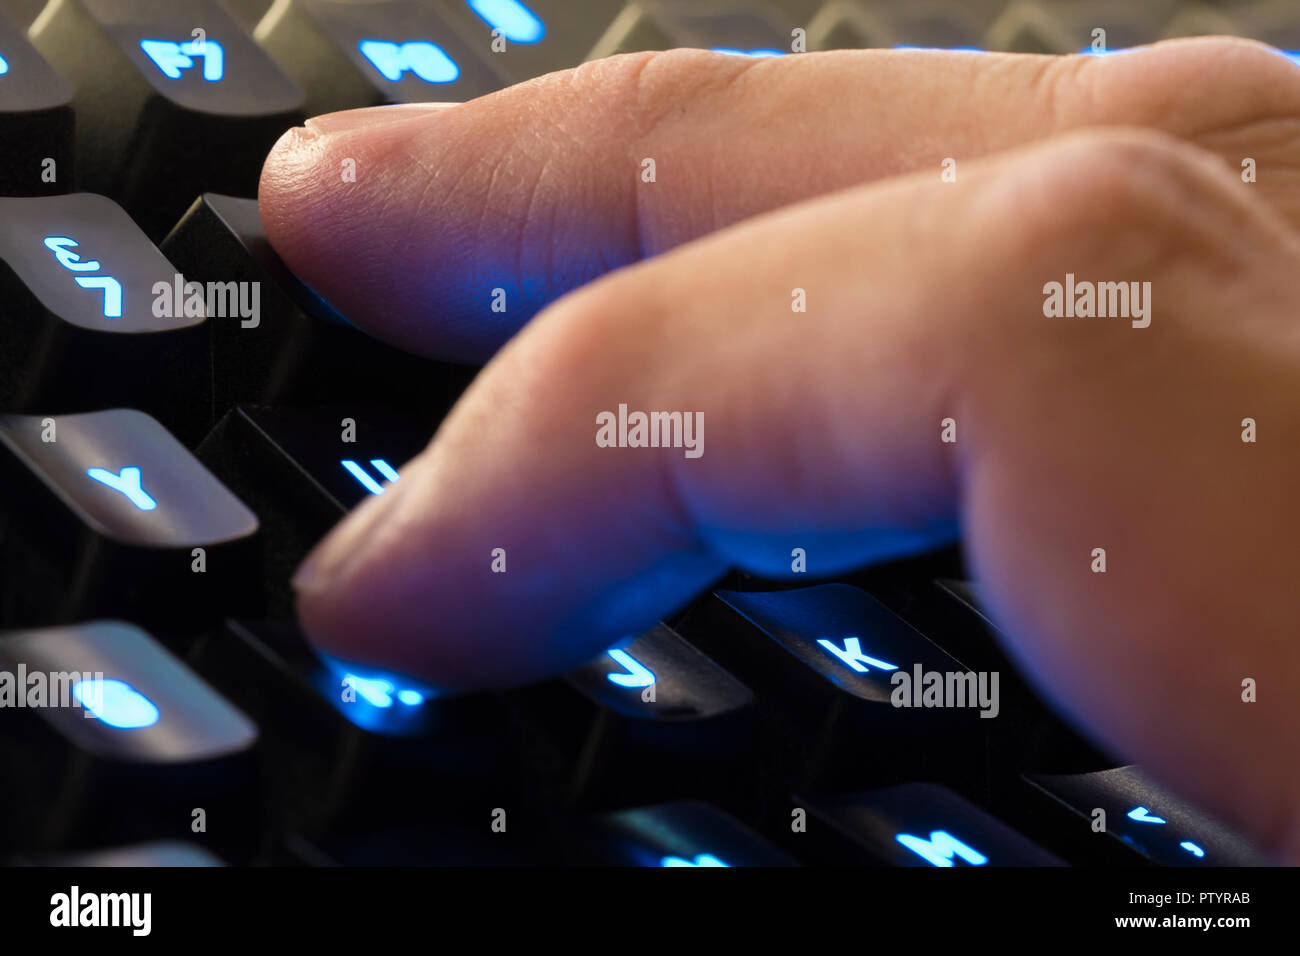 Fingers from the hand of a man typing on a backlit computer keyboard. - Stock Image